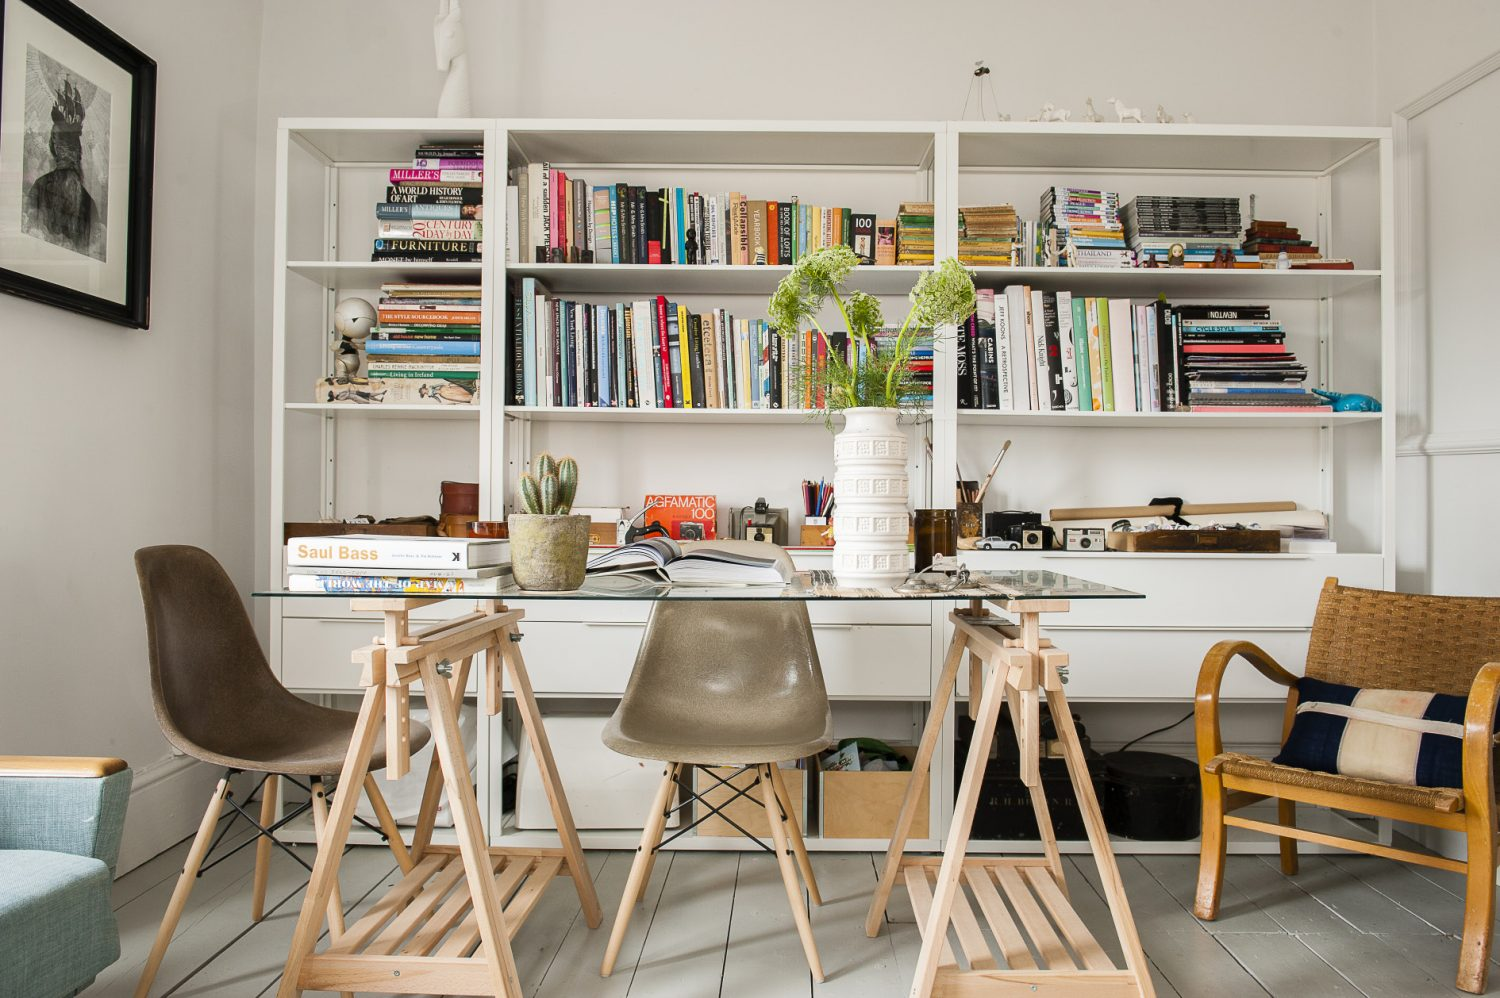 The bookcase and glass-topped desk